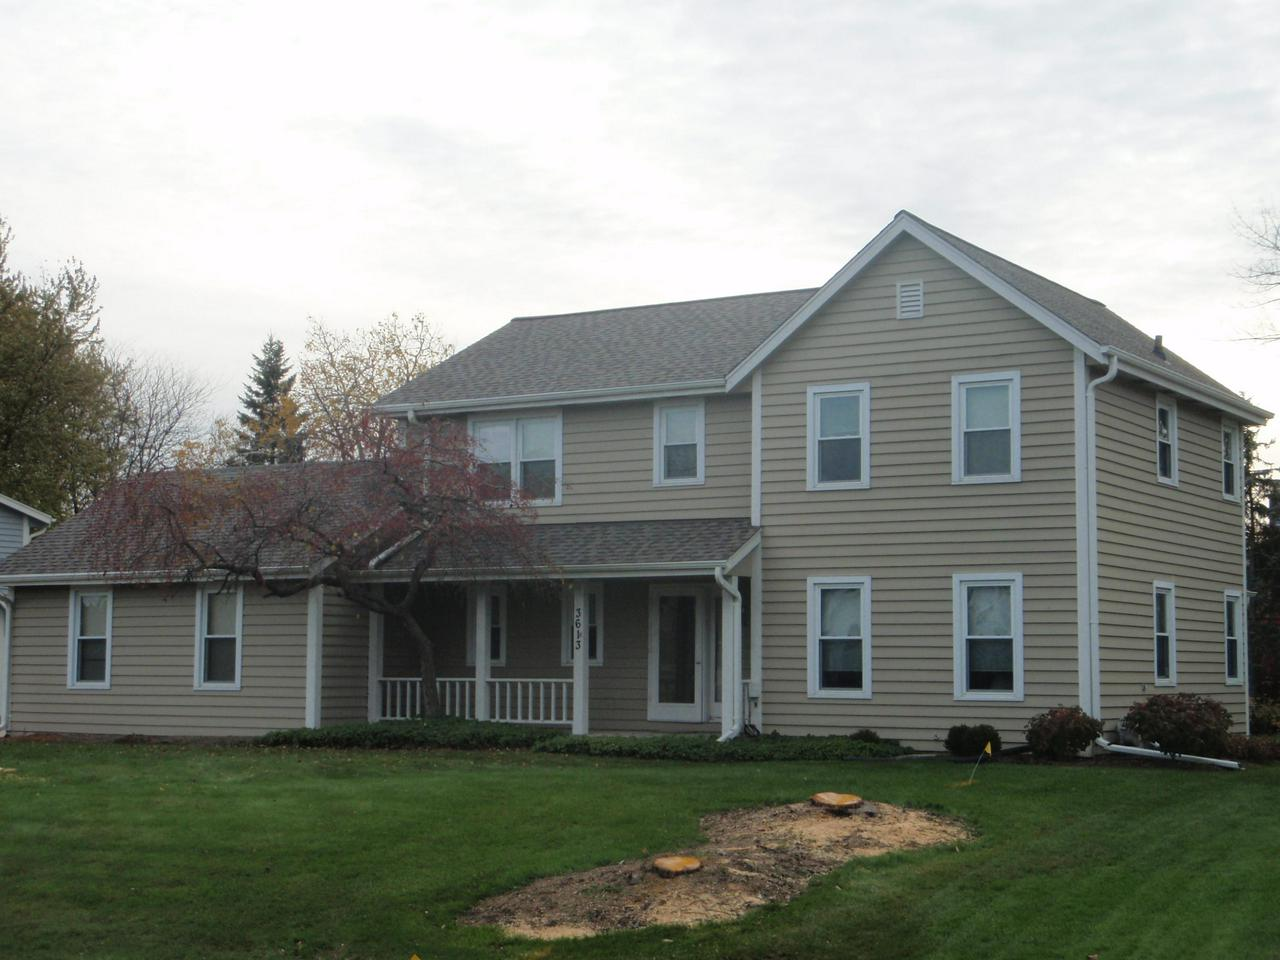 Miraculously maintained  gorgeous open concept colonial  w professionally finished Full size LL Rec room in desirable Ville Du Parc subdivision is now available at priced to sell  for one lucky family ! Brand new 30 year dimensional roof w warranty, updated windows & patio doors, Hard wood floors on main level,Newer water heater, garage door opener,  & garage door. Professionally finished HUGE lower level Rec room w second fireplace & full bath PLUS extra office room. 3 bed room & over sized DEN/living room on main level can easily converted to extra bedroom if needed. Family room w cathedral ceiling & stone fireplace , opens to formal dining rm & dinette  next to custom designed patio w accent lighting.Professionally landscaped.Freshly painted and nicely updated throughout. HURRY!!!